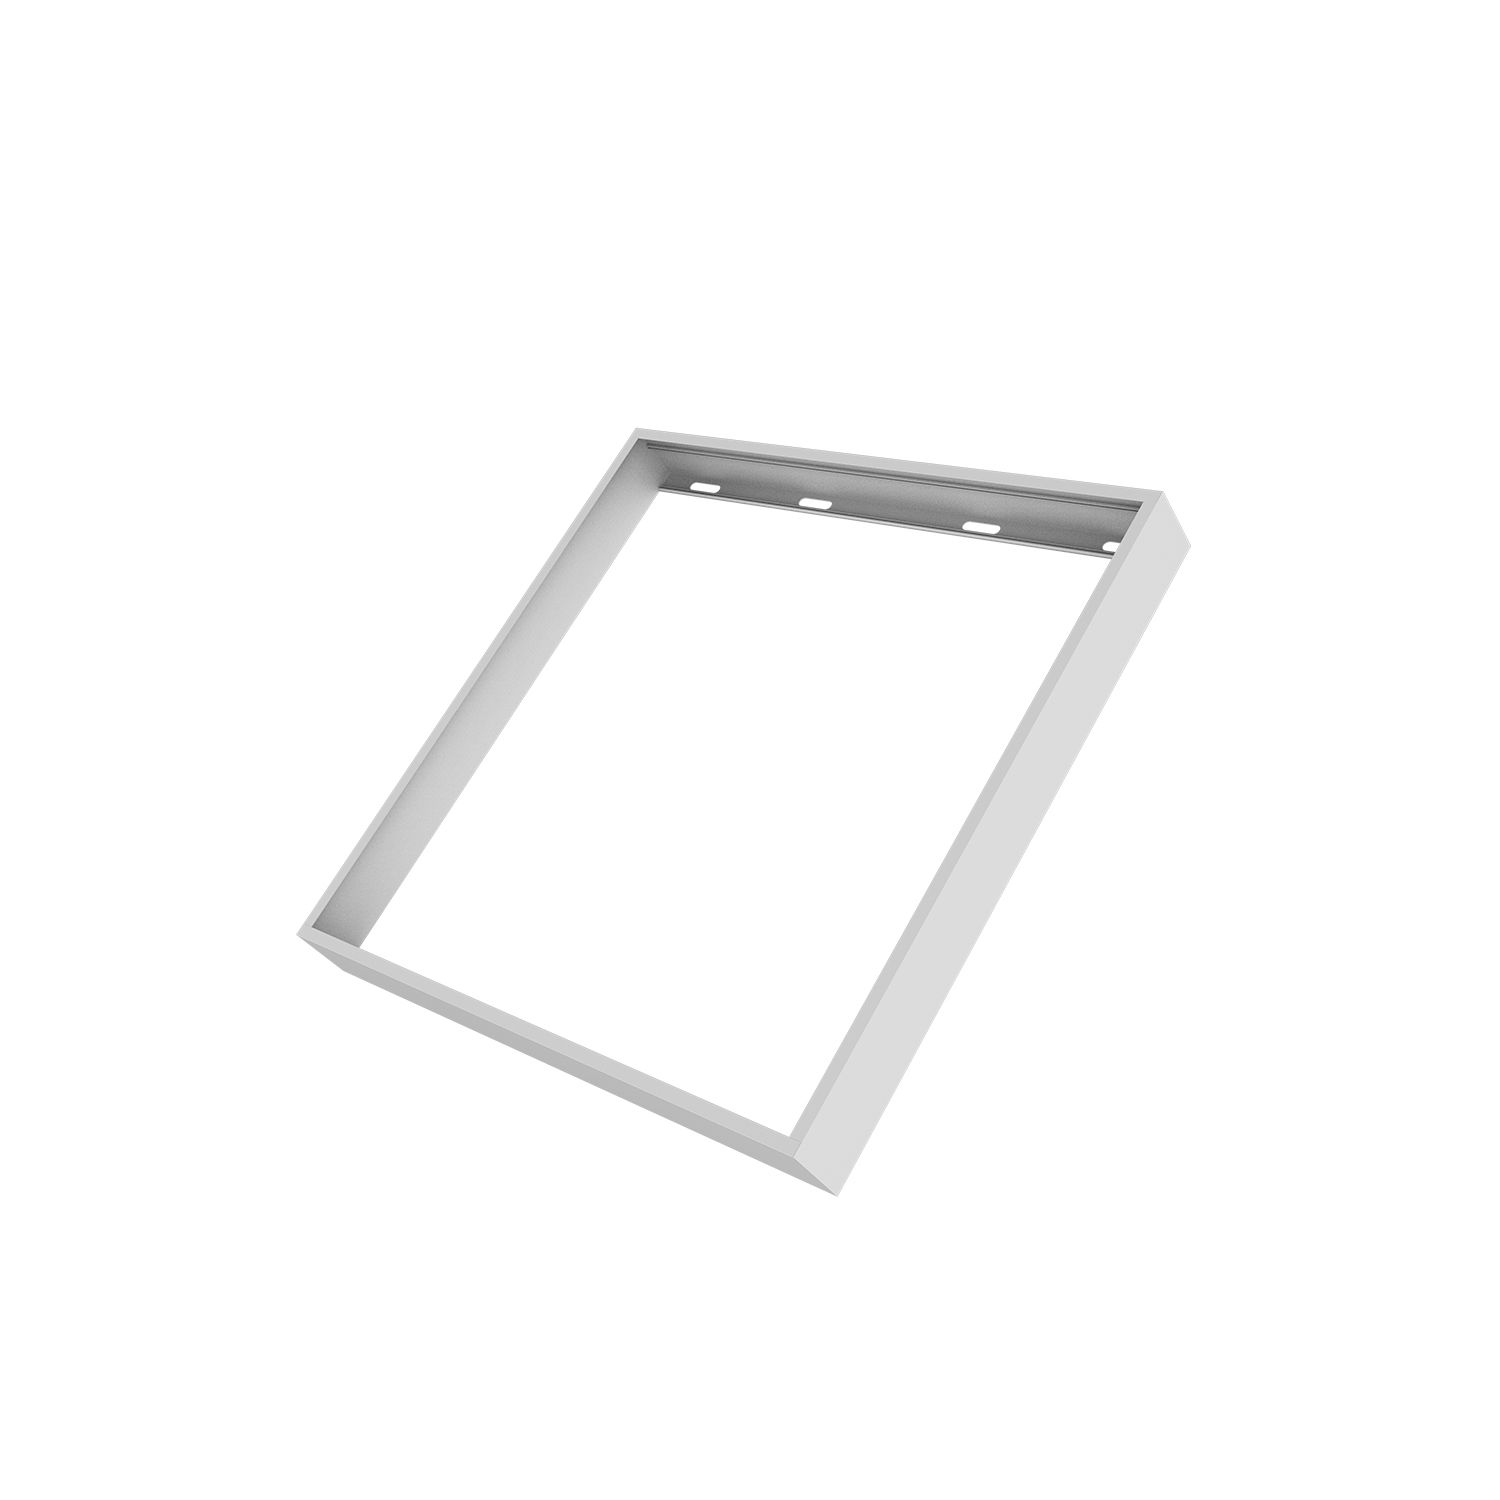 Noxion LED Panel Econox Removable Surface Mounted Kit 625x625